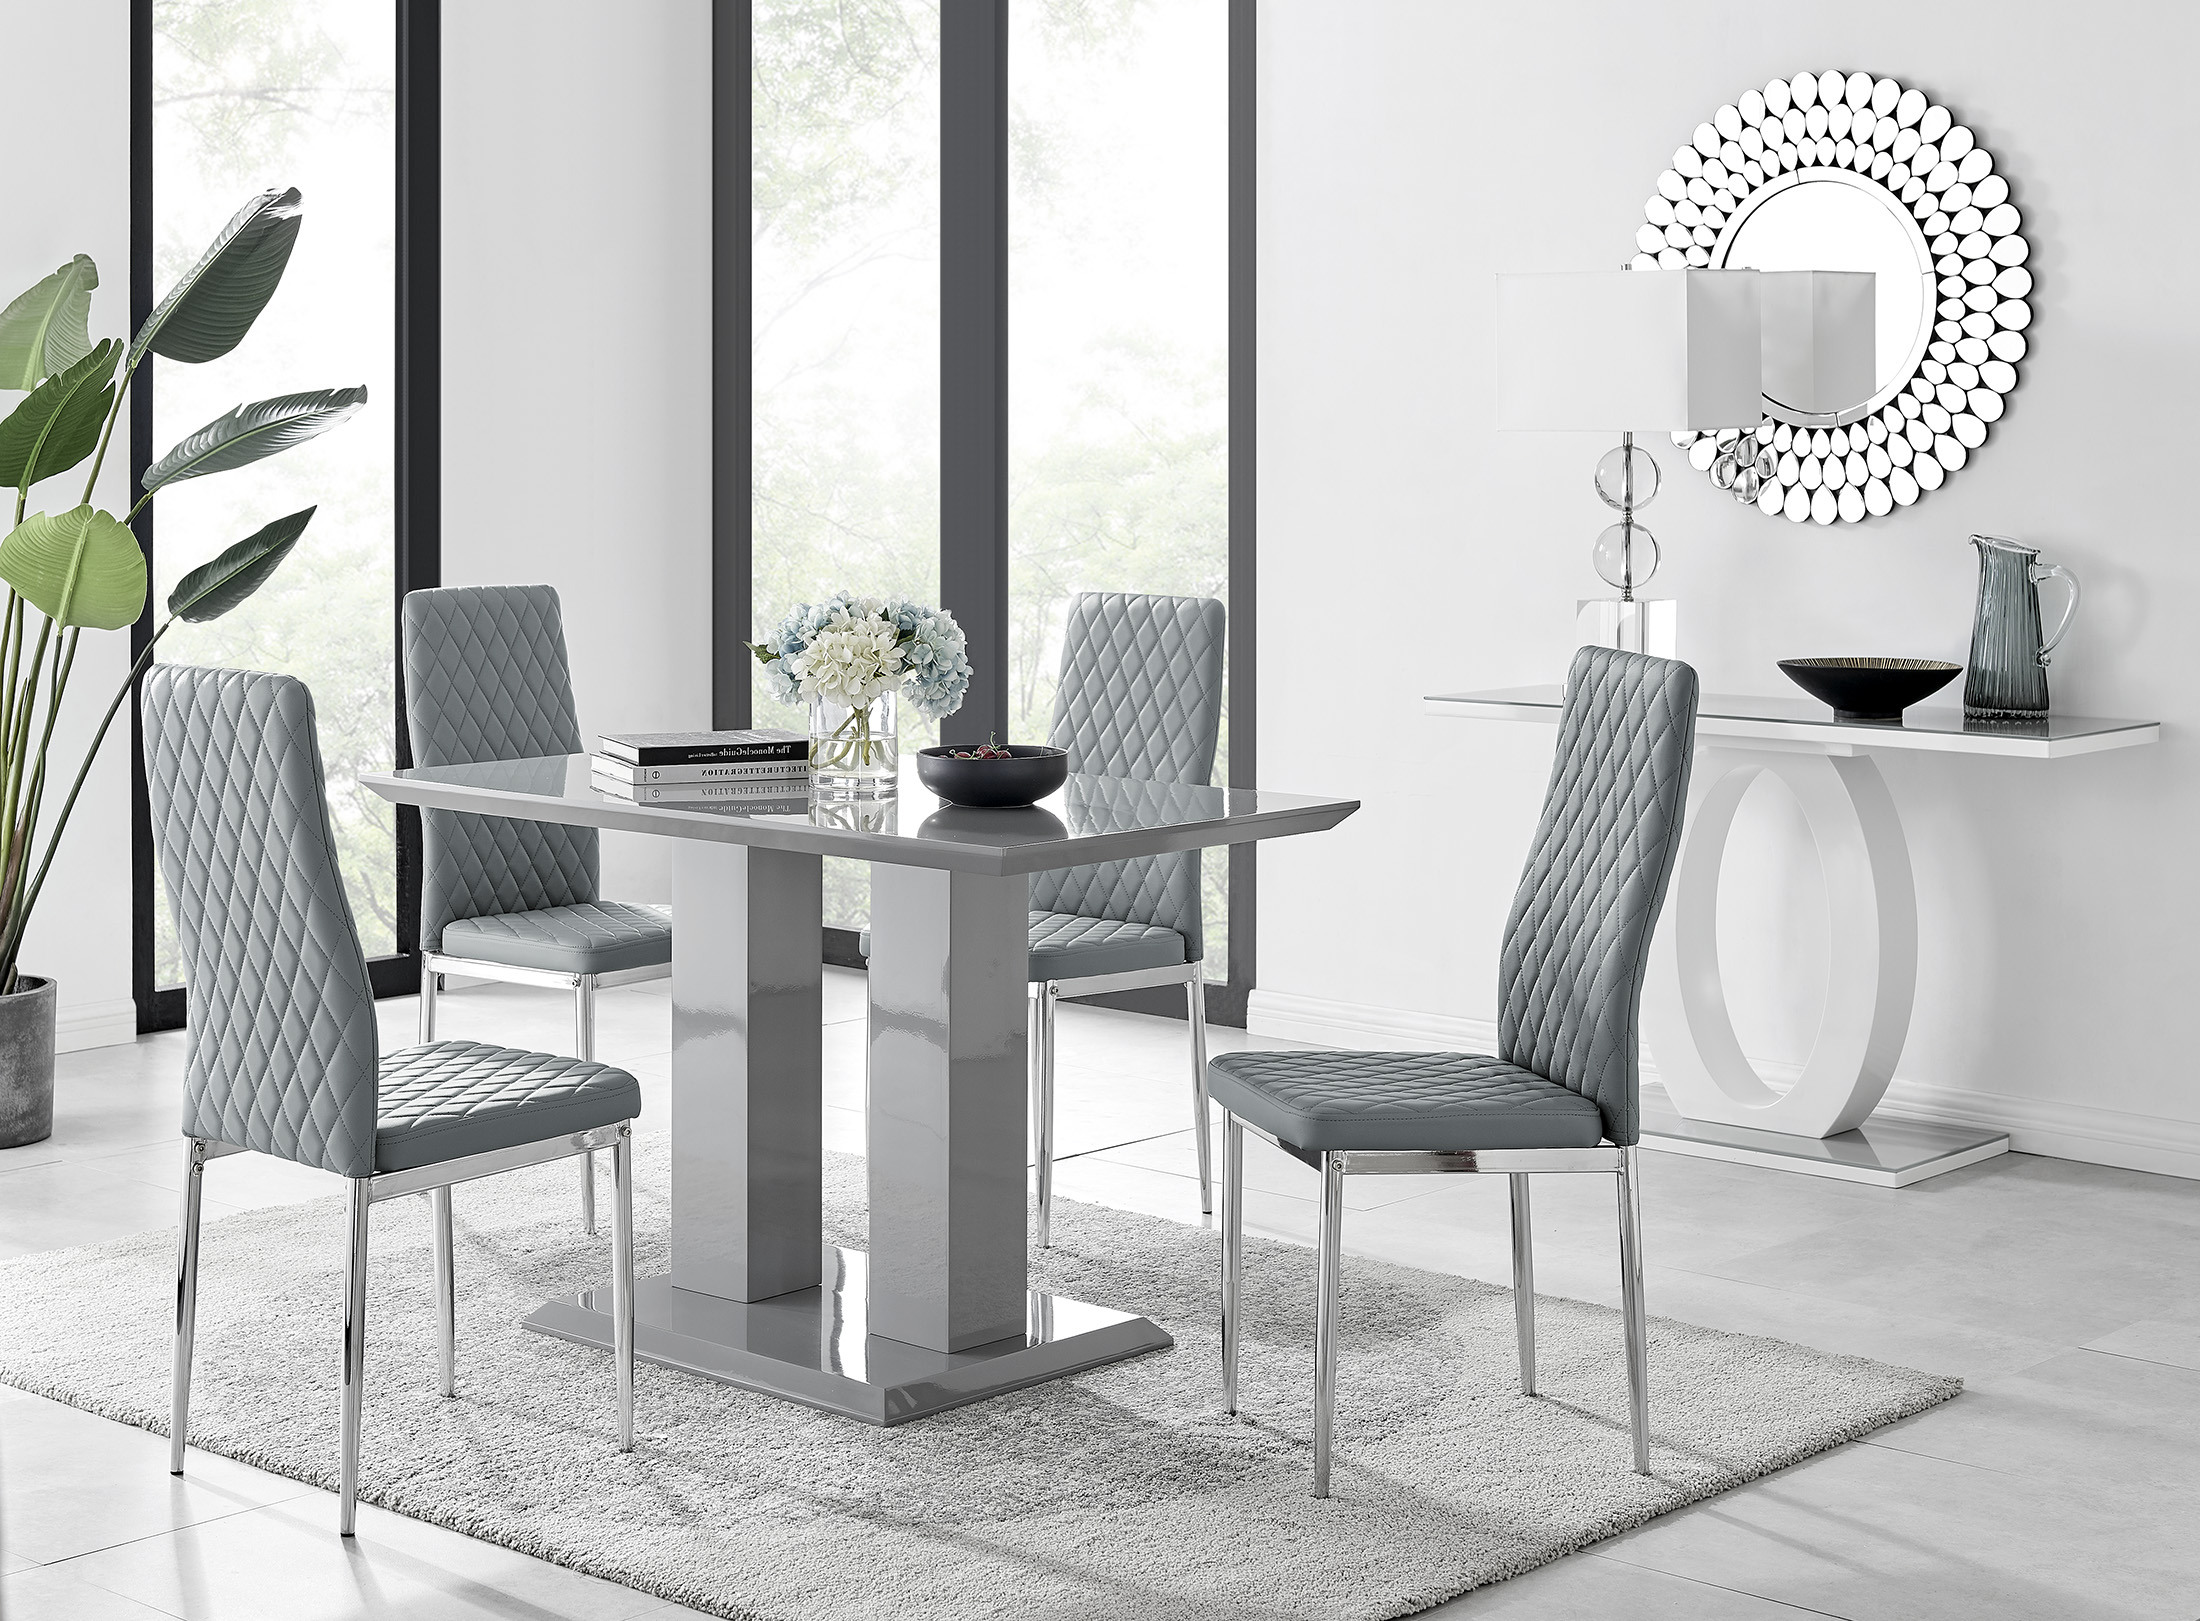 Imperia 9 Modern Grey High Gloss Dining Table And 9 Modern Milan Chairs Set